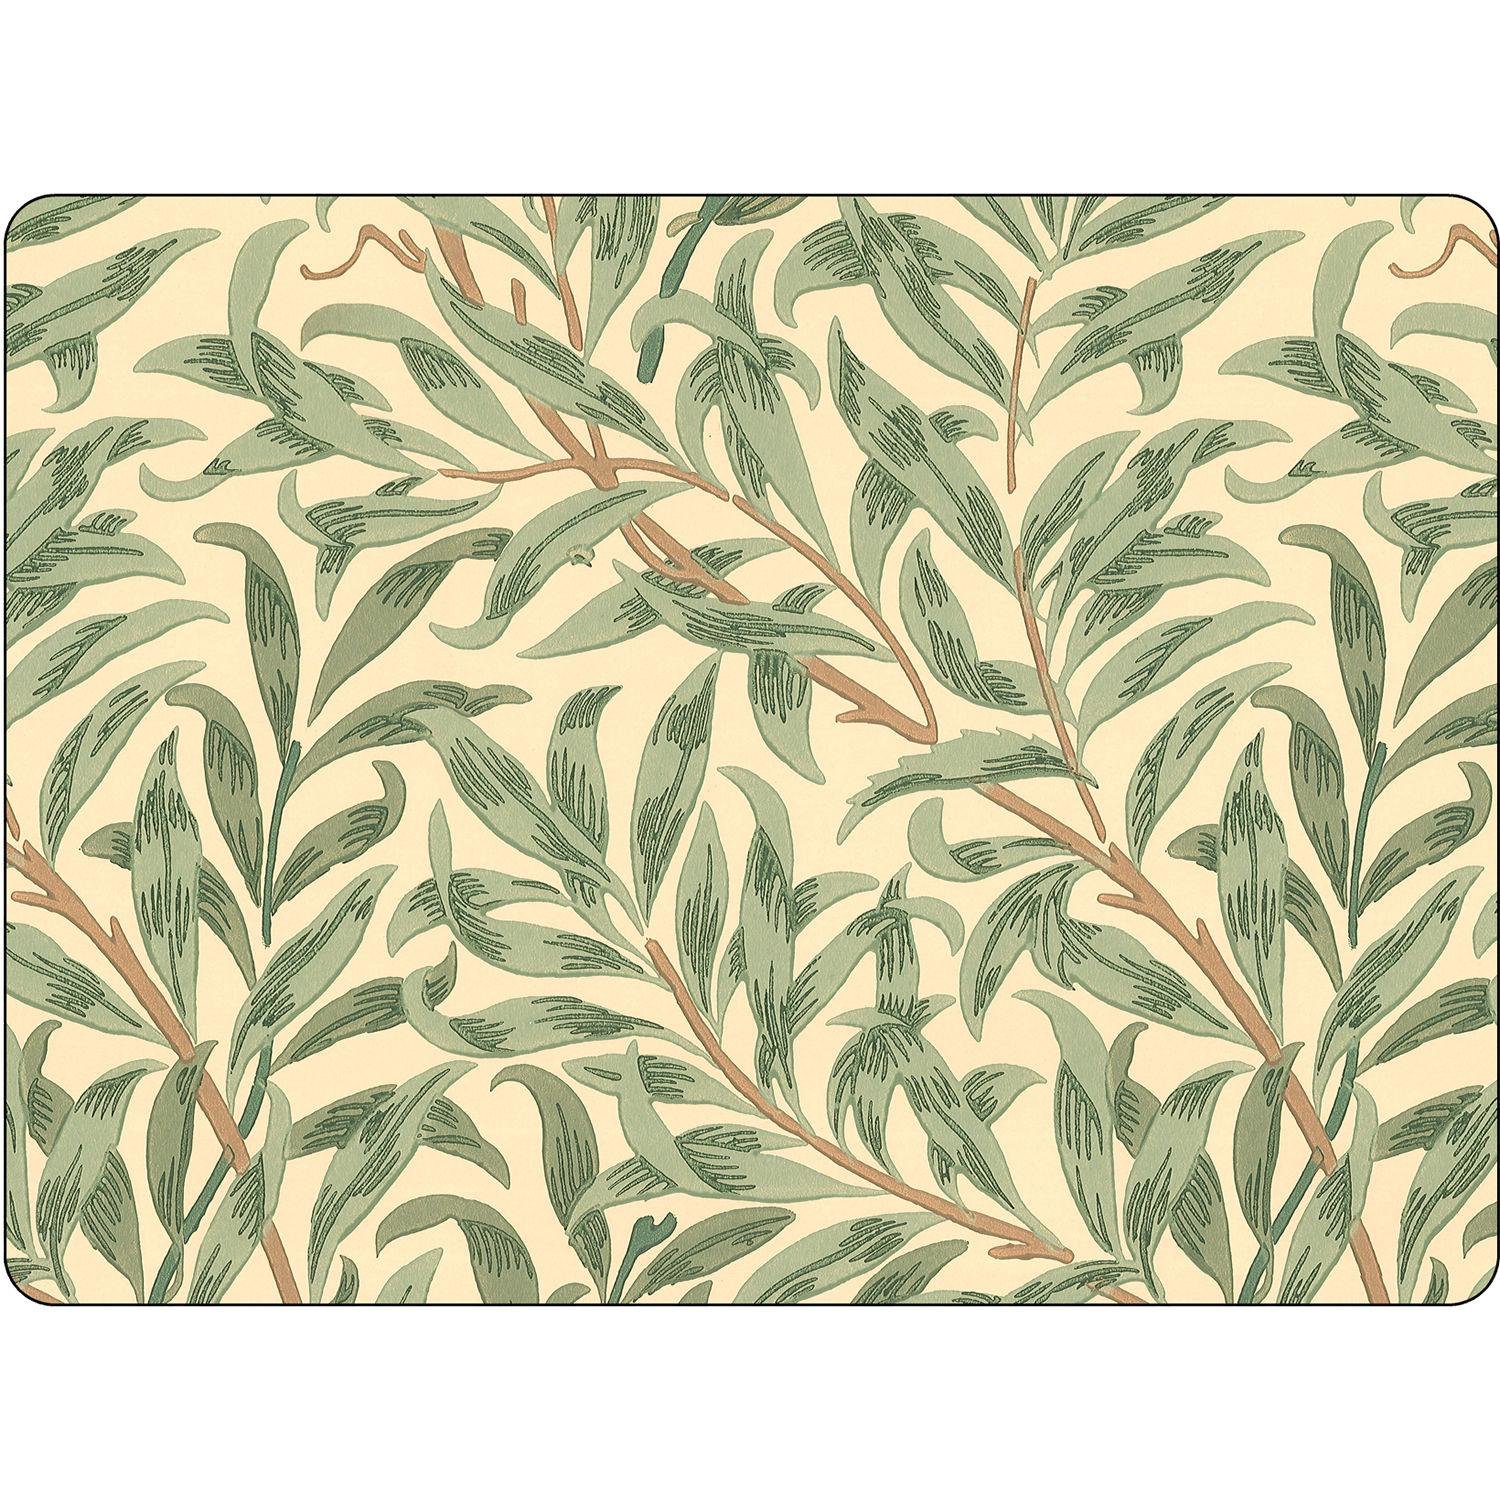 Pimpernel William Morris Willow Bough Green Placemats Set